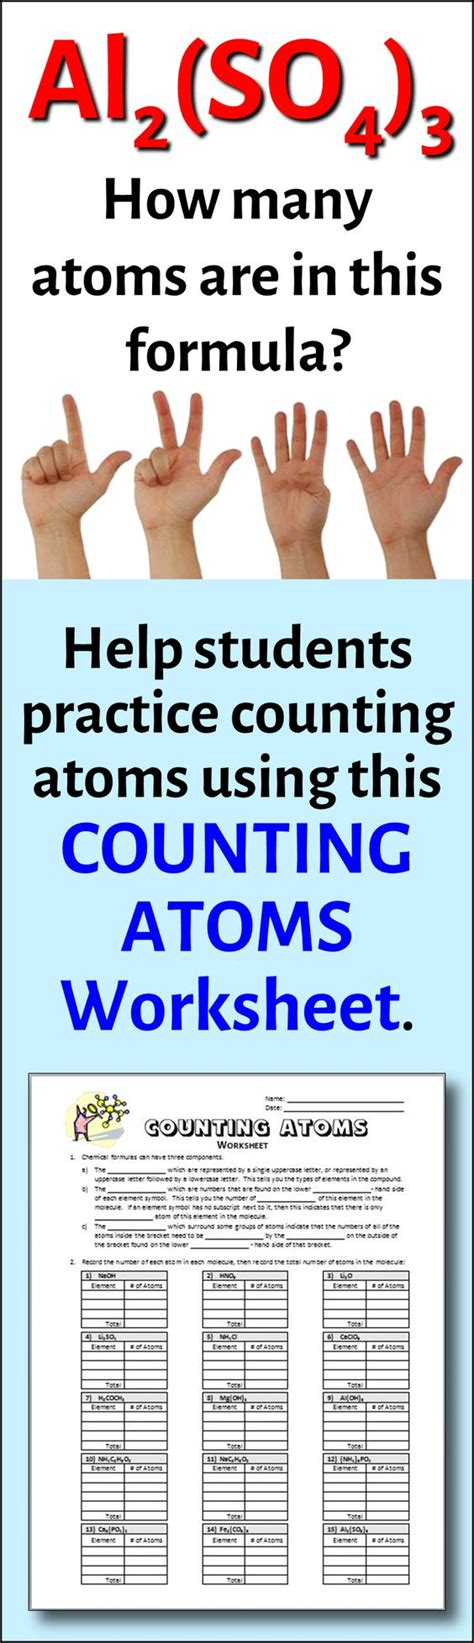 Number Of Atoms In A Formula Worksheet Answers by Counting Atoms Worksheet Editable Equation Count And